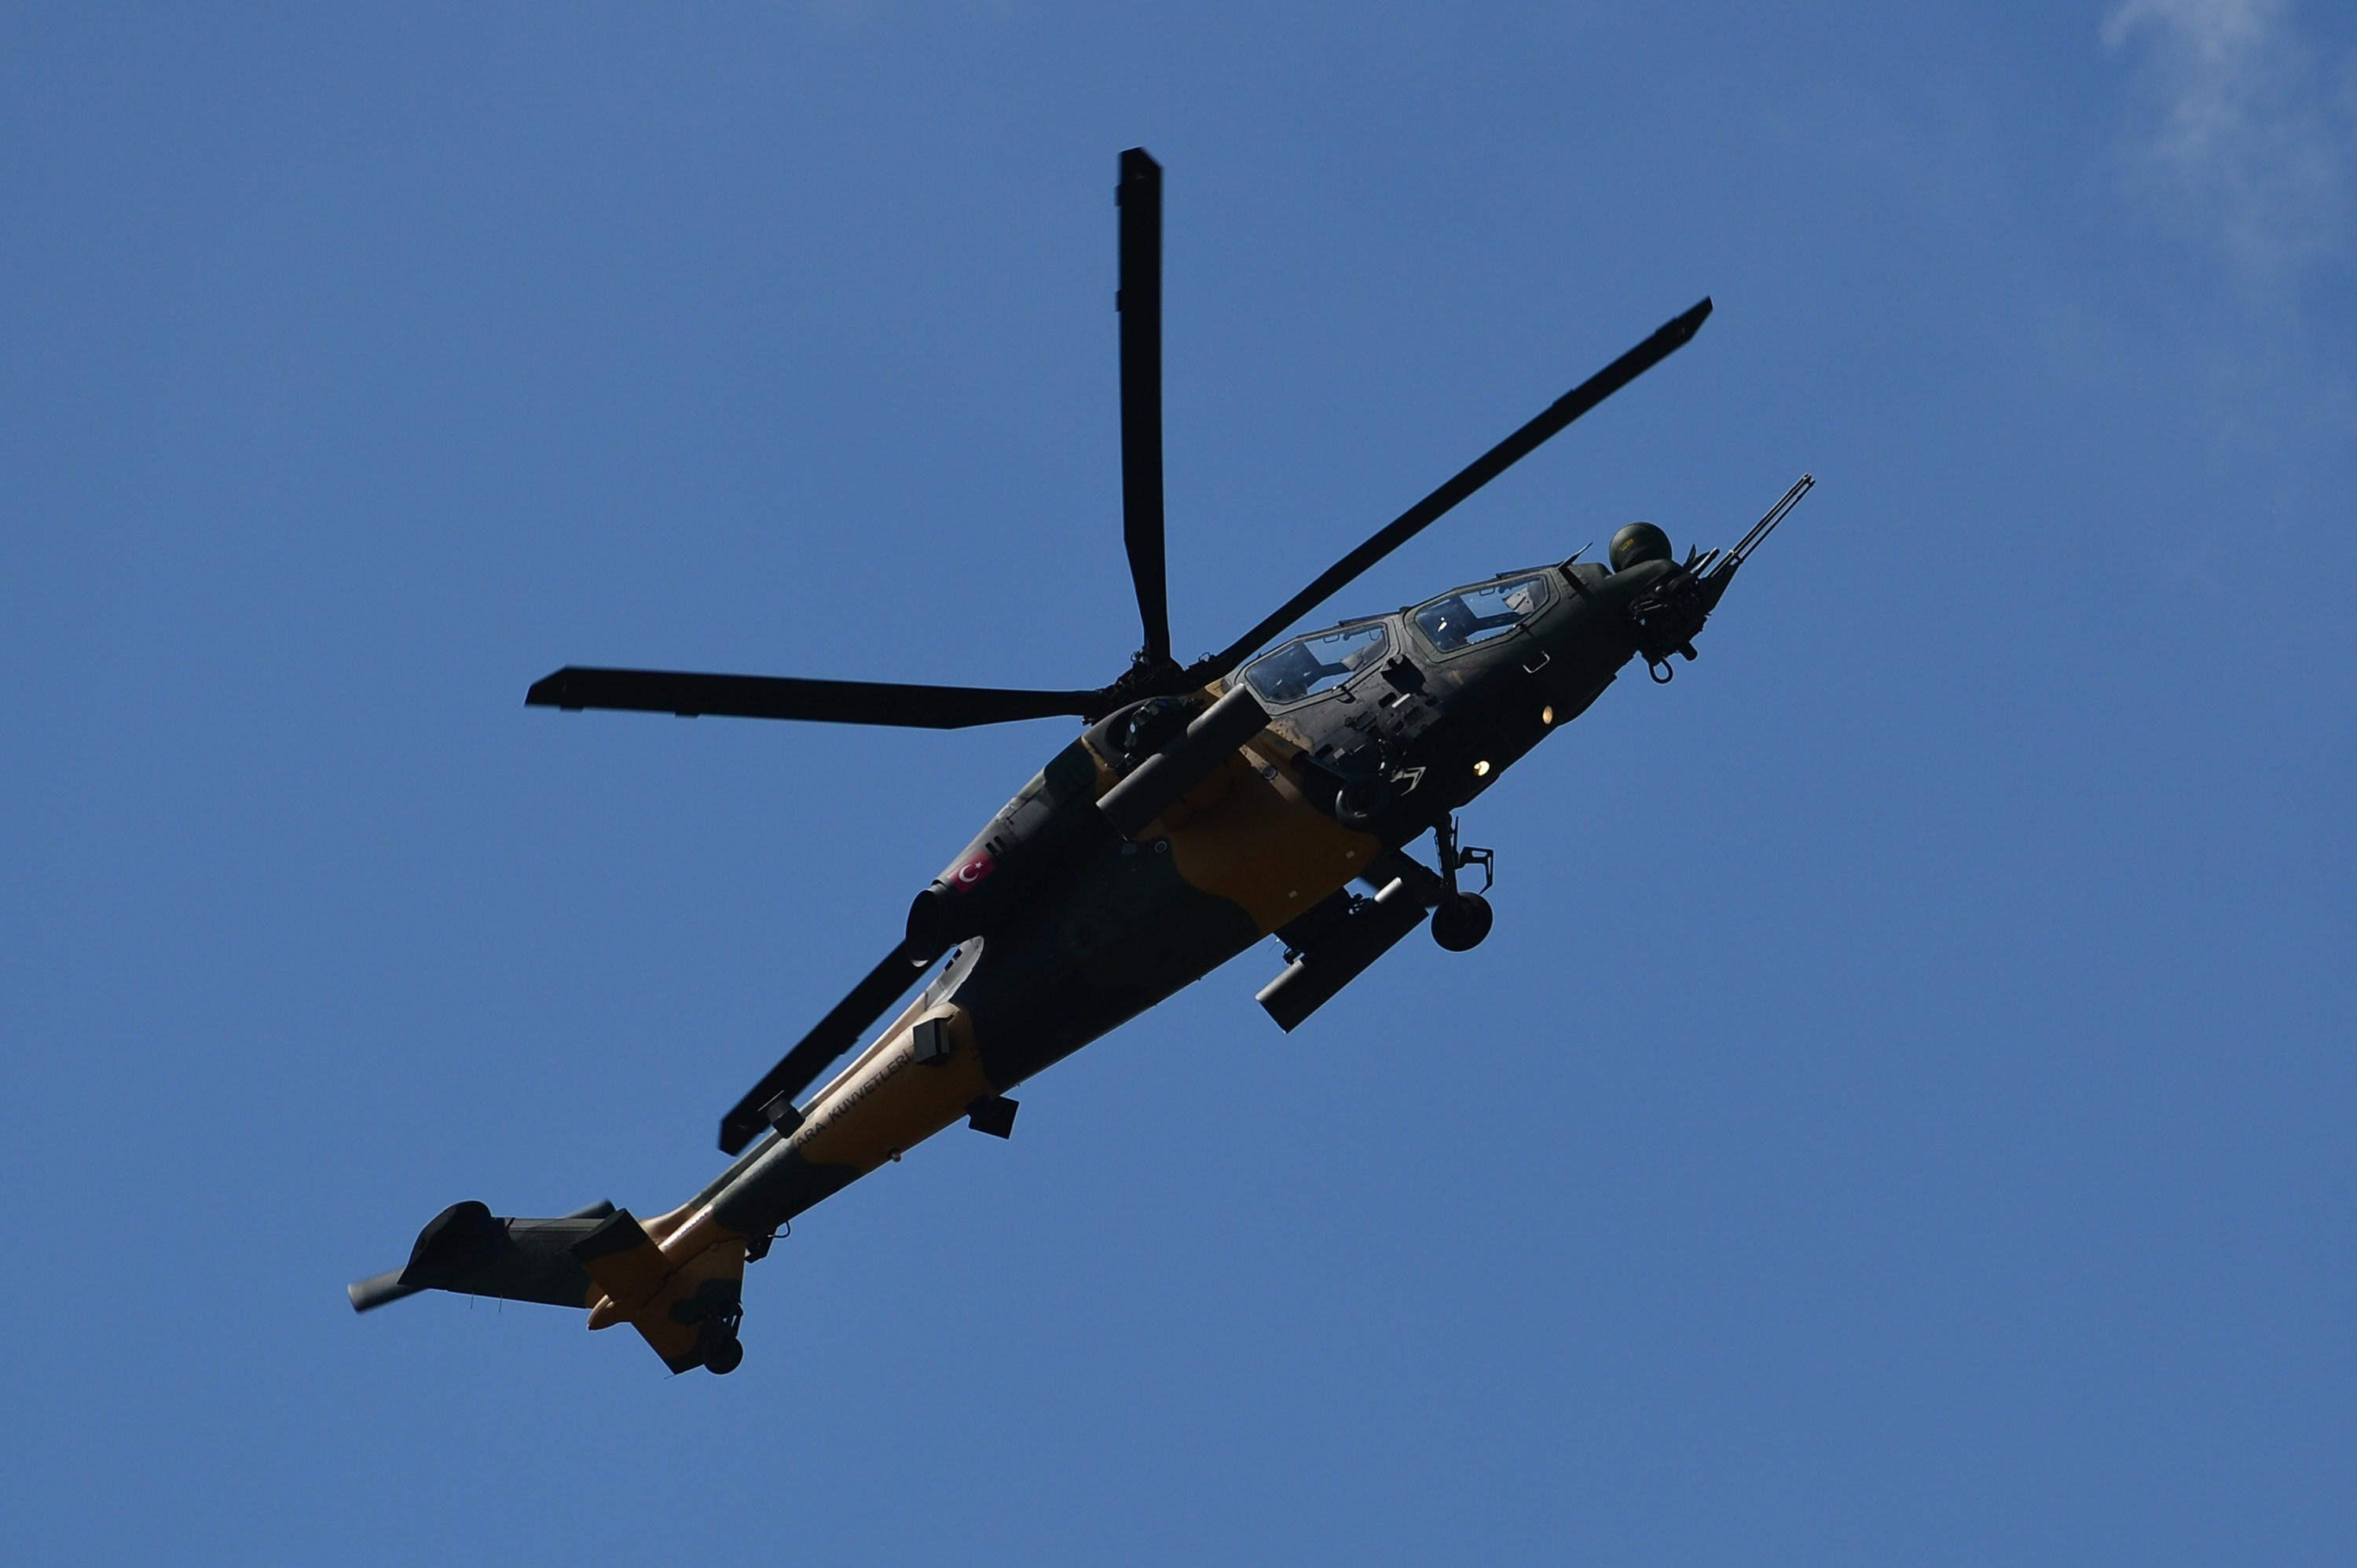 Farnborough Airshow Tai T129 Atak